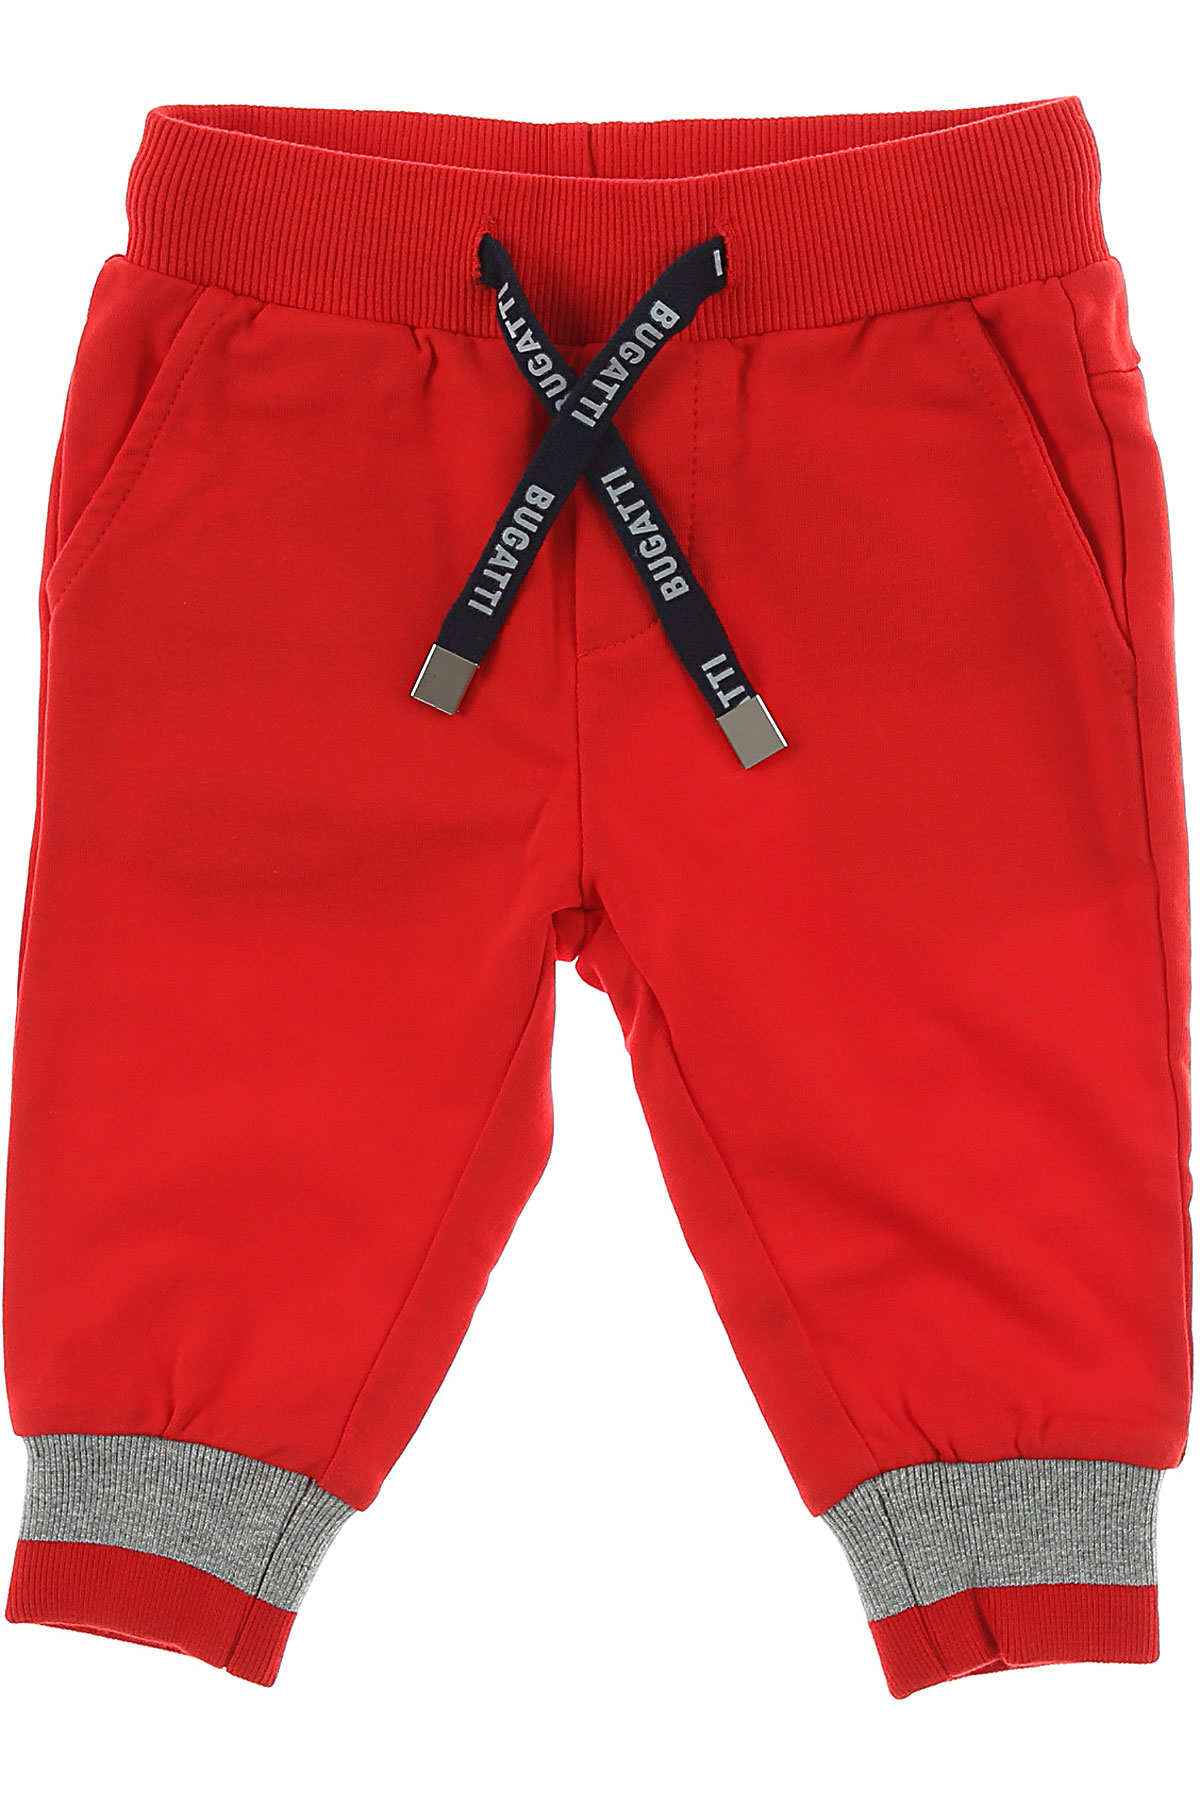 Image of Bugatti Baby Pants for Boys, Red, Cotton, 2017, 12M 18M 6M 9M